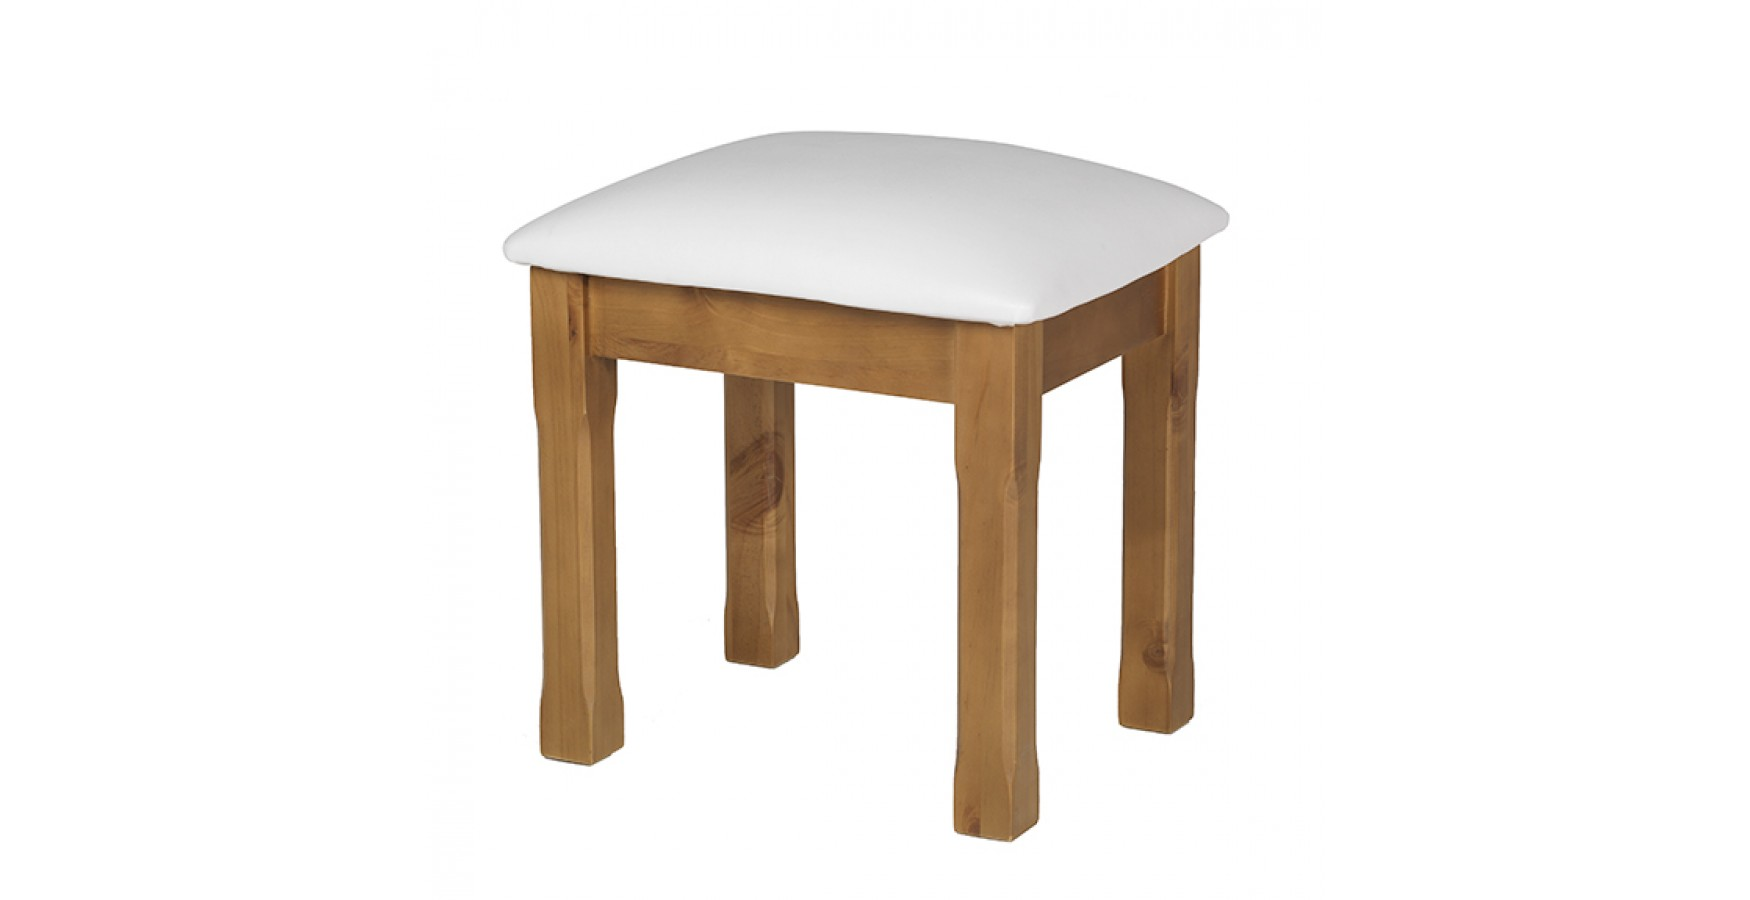 Luxury country pine dressing table stool uyocmbn